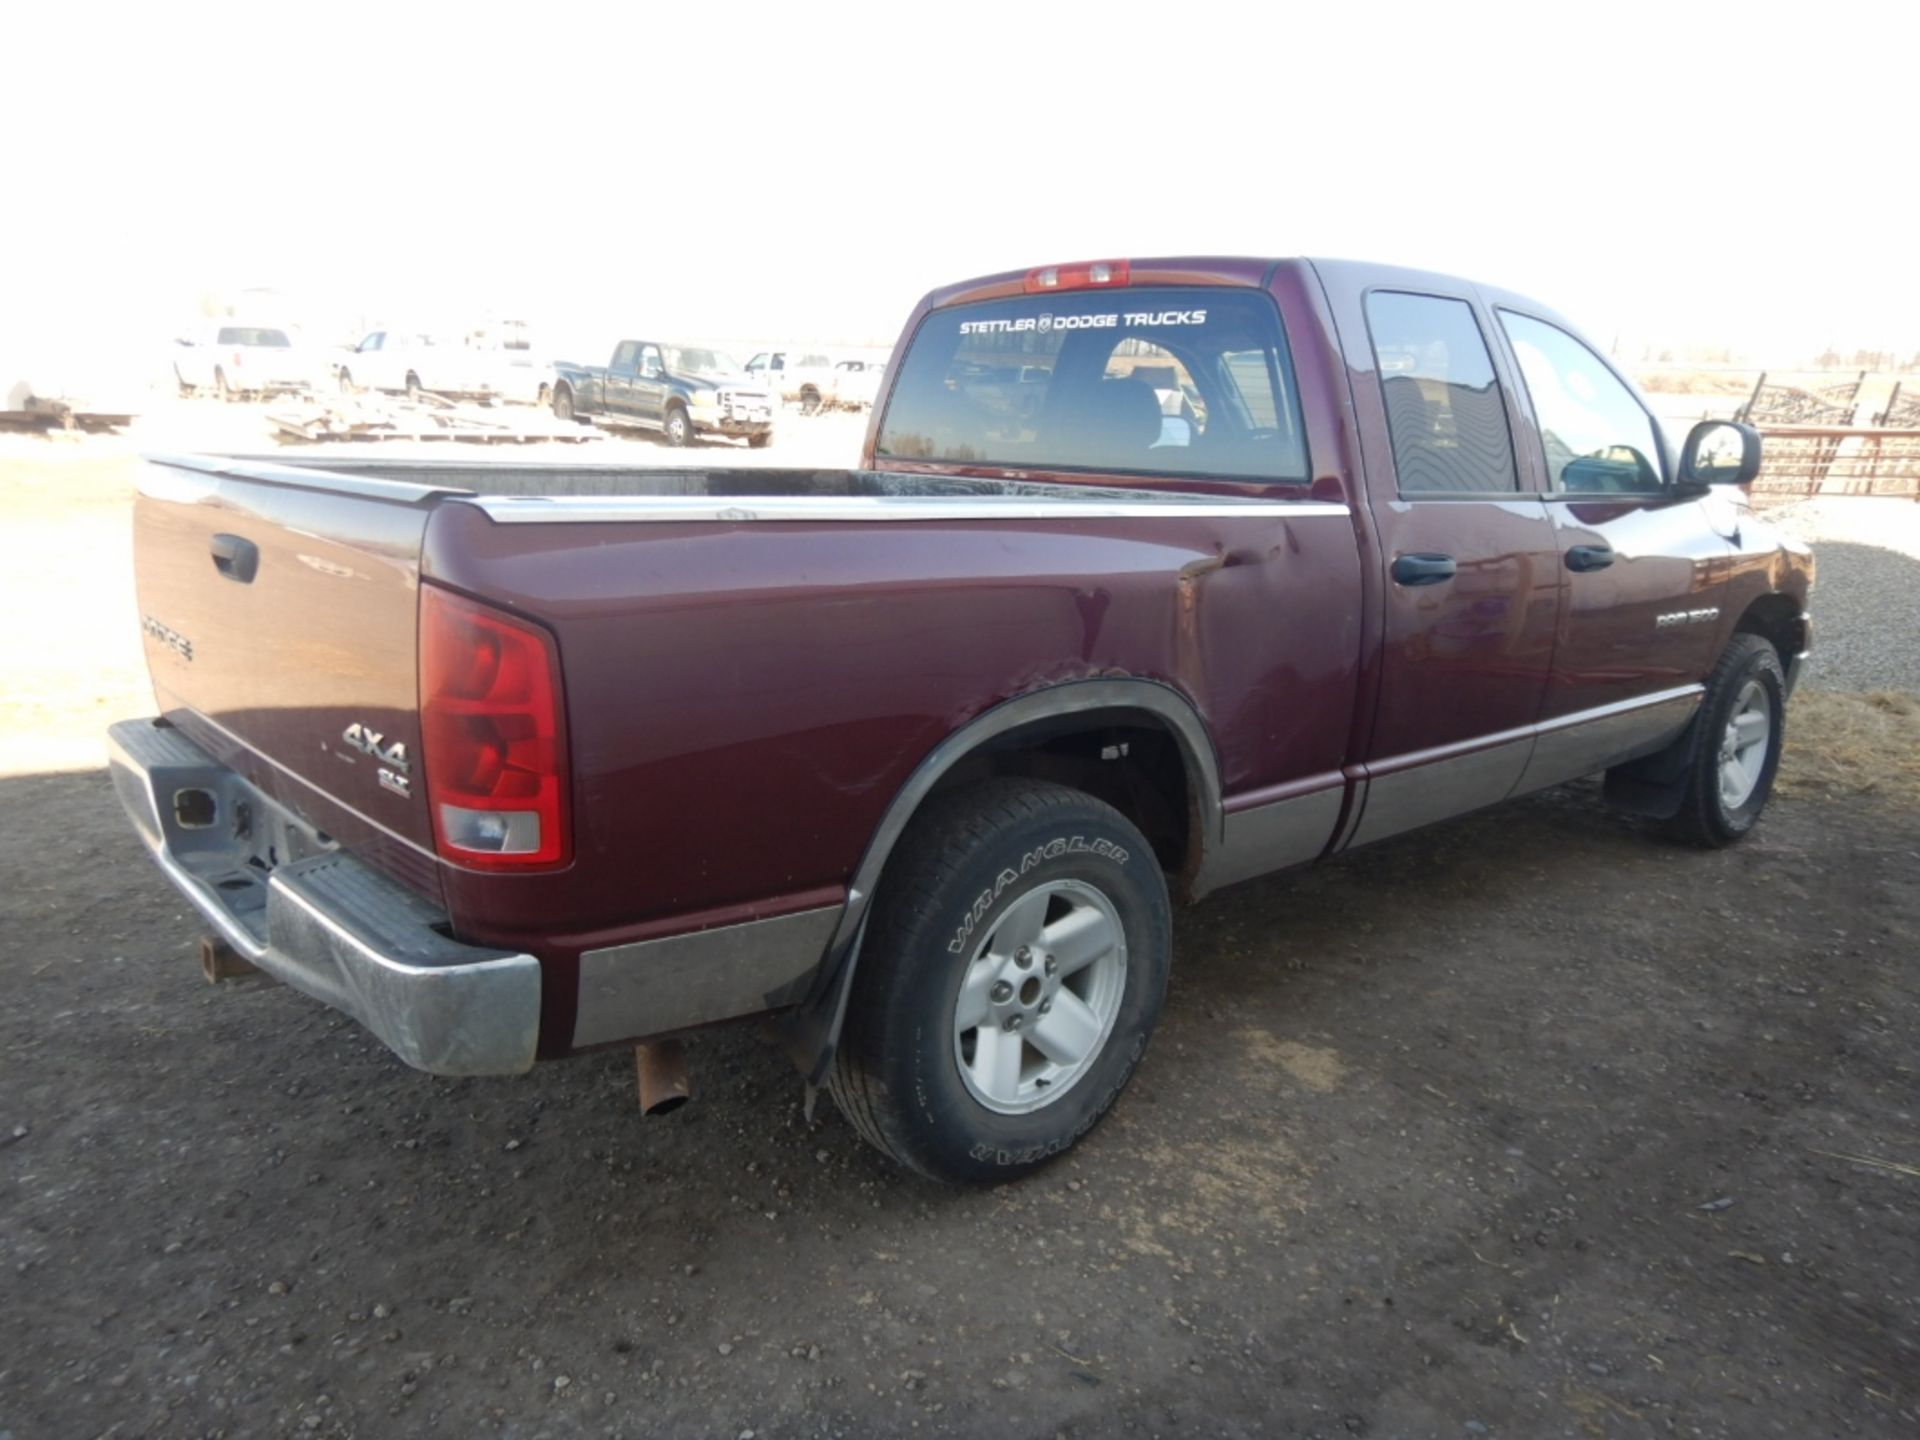 2003 DODGE RAM 1500 PICKUP, GAS, CREW CAB, SHORT BOX, AT, 248,000KM'S SHOWING, S/N - Image 6 of 11